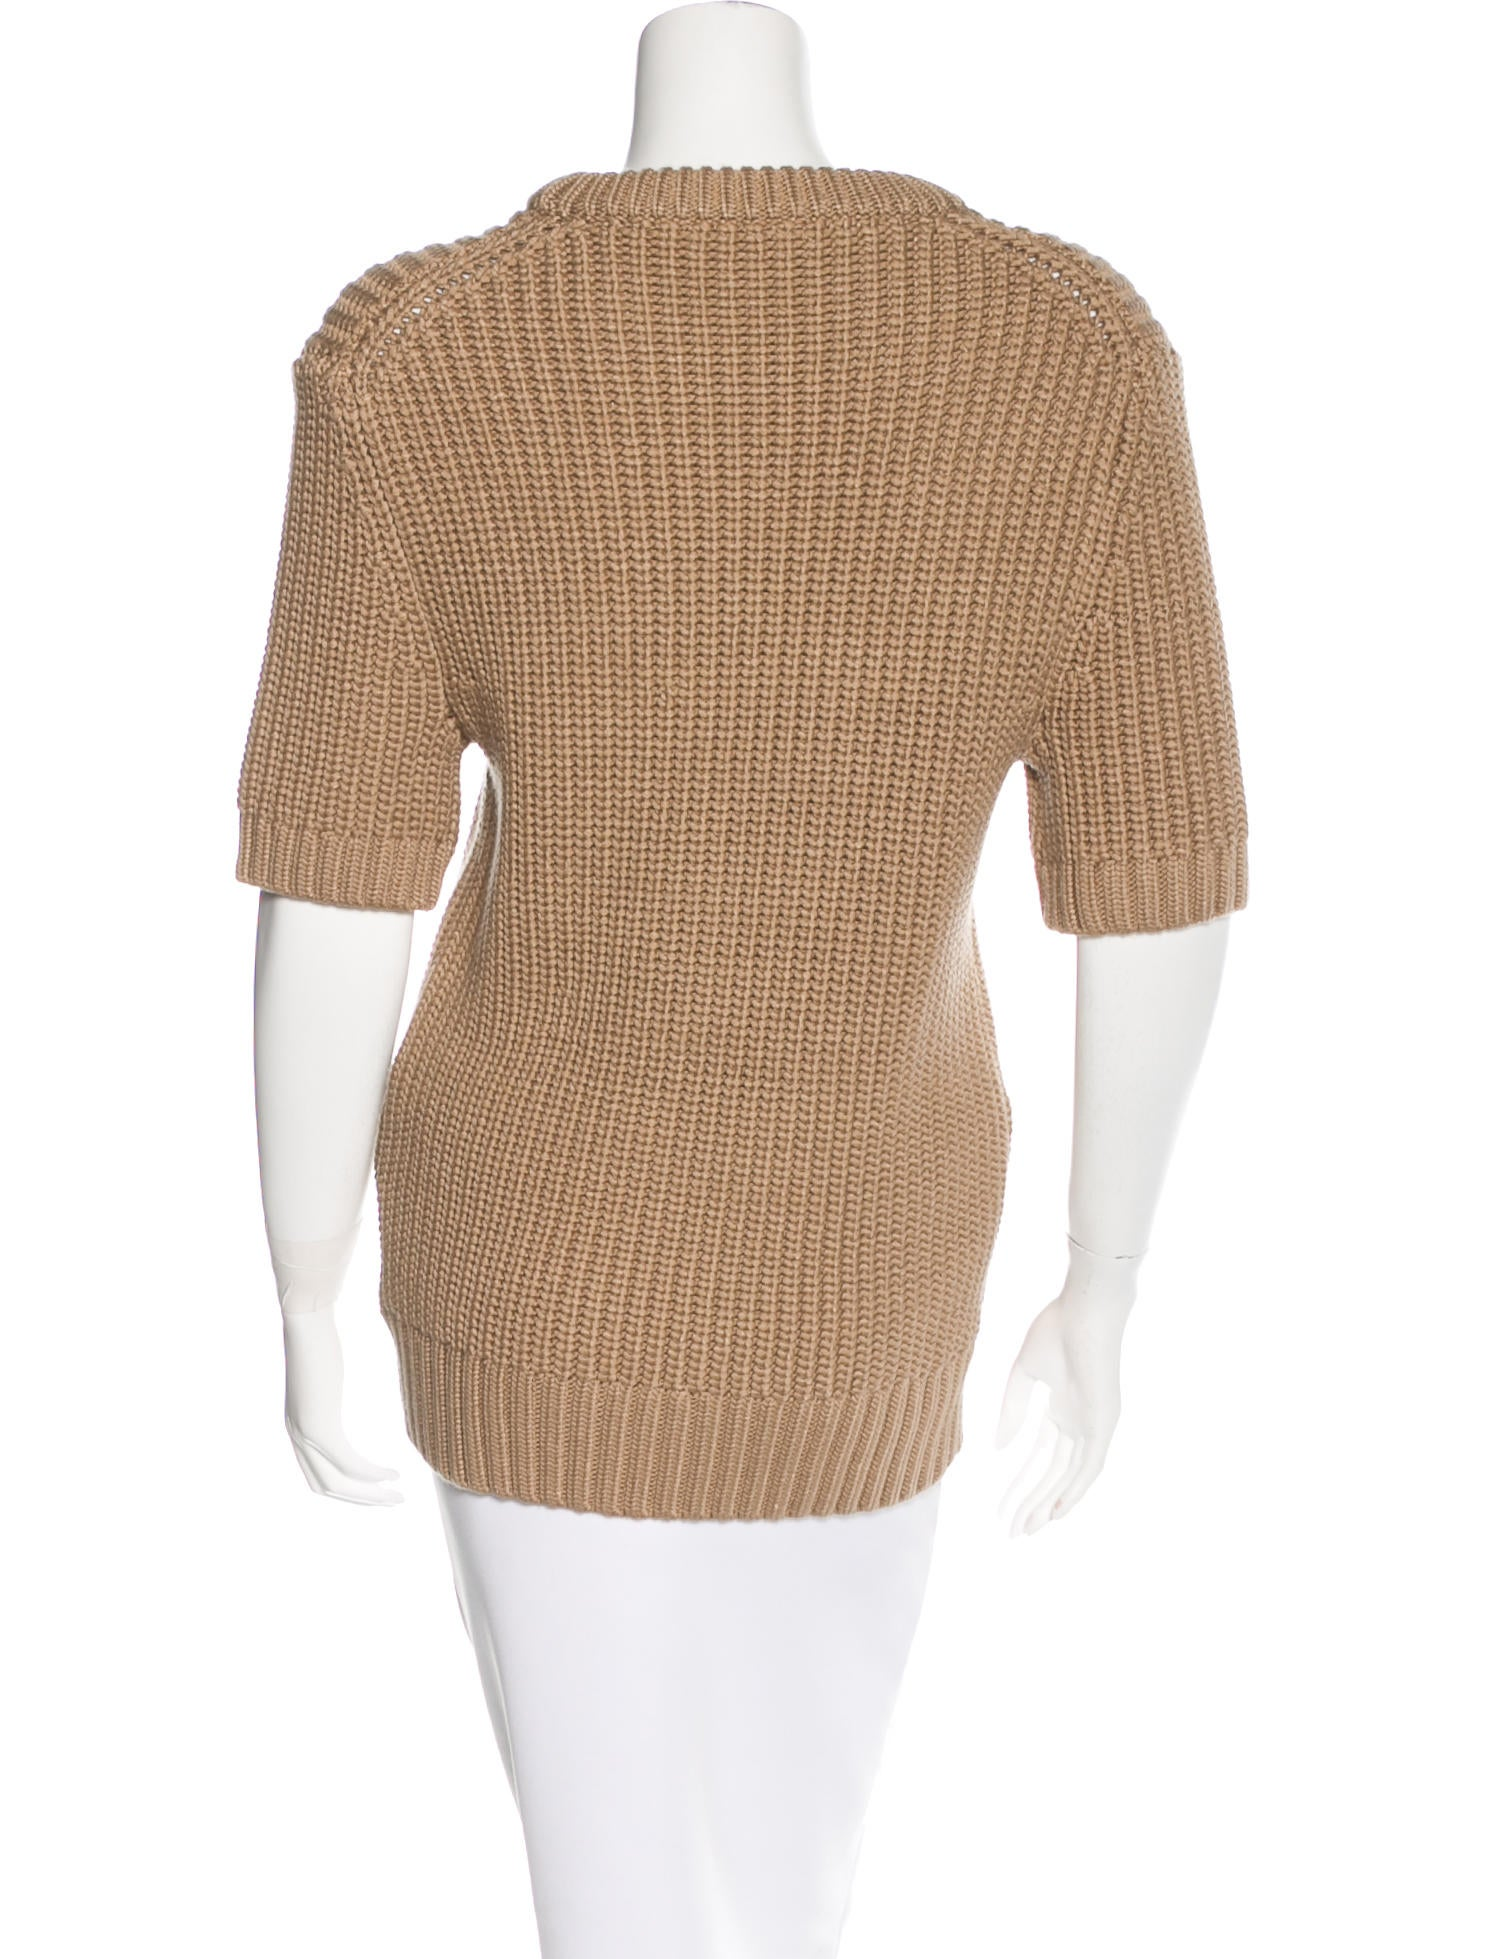 Shop short sleeved knit tops for women. Find unique styles of womens short sleeve tops and tees.